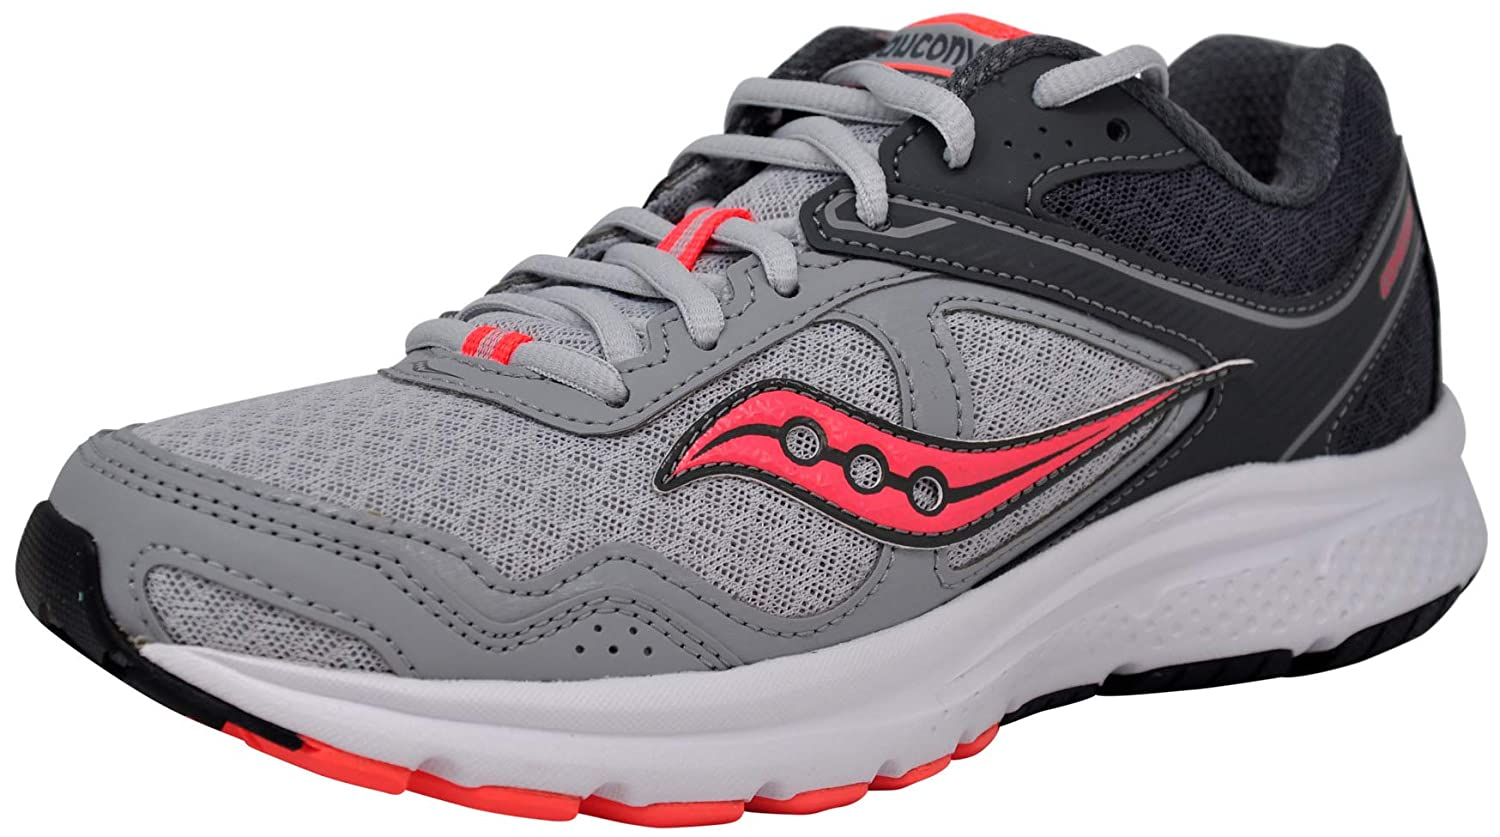 Saucony Grid Cohesion 10 Running De las mujeres Shoes Size 10.5